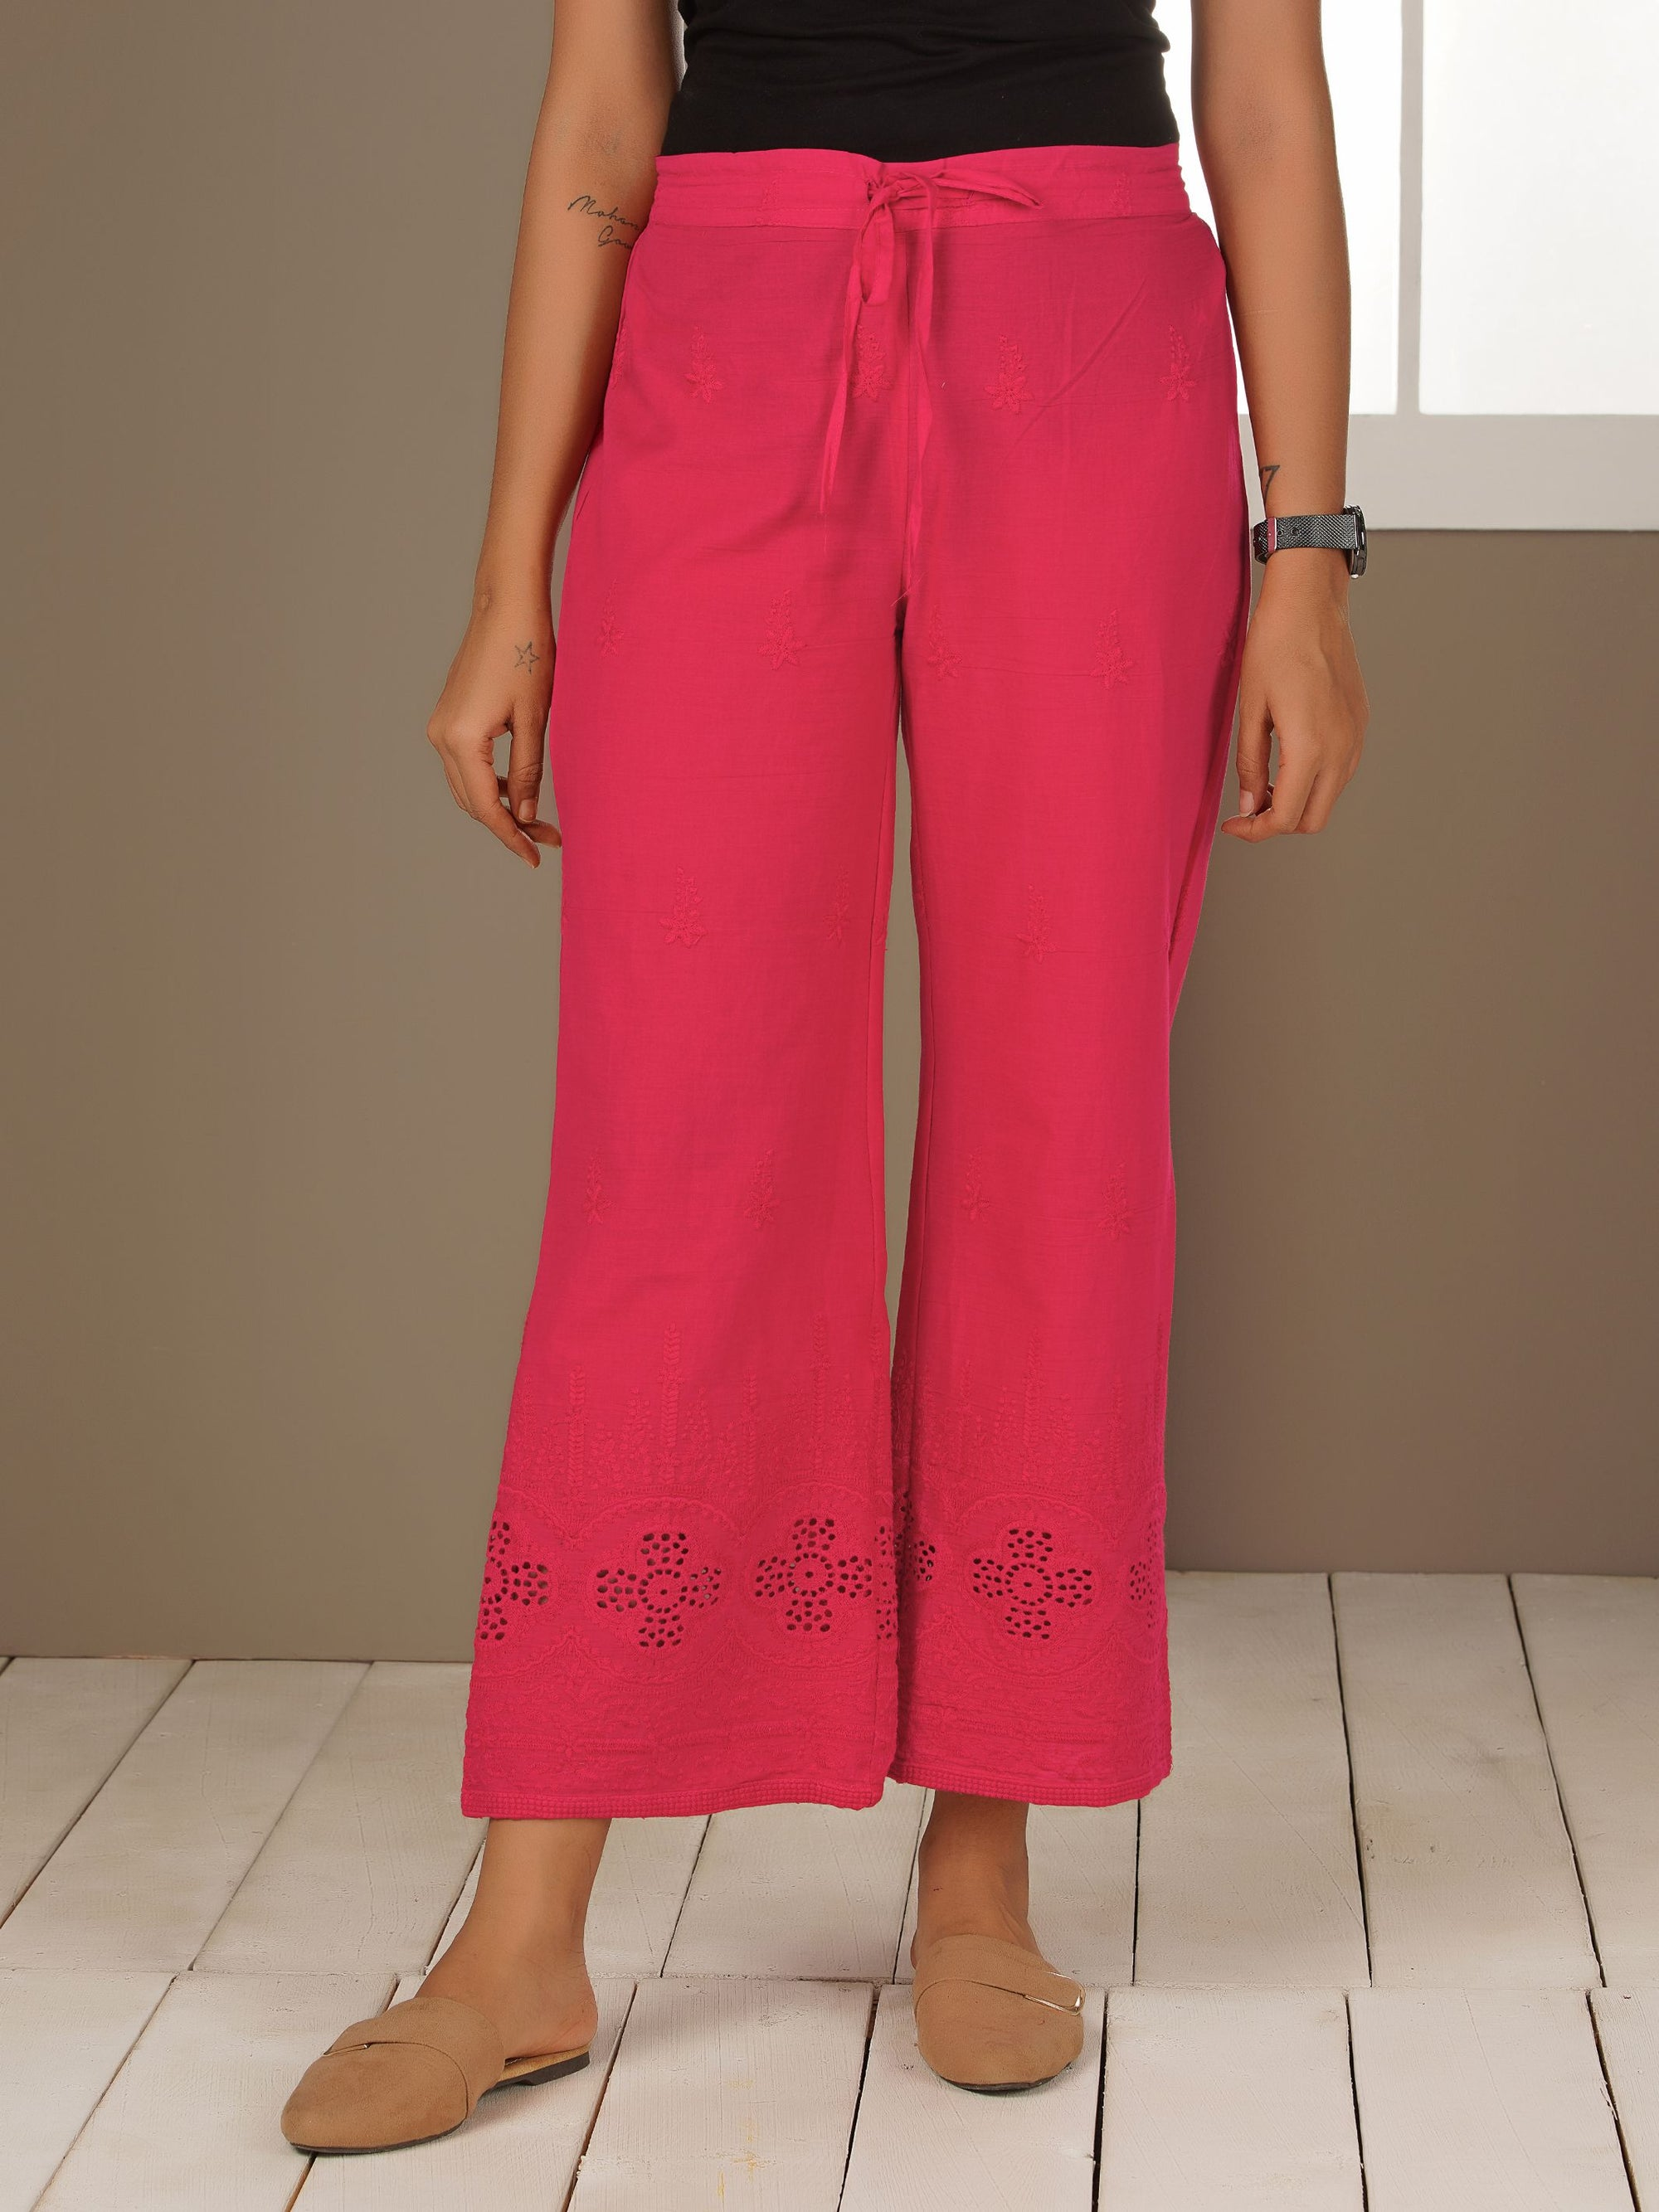 Floral Embroidered Schiffli Palazzo Pants - Pink